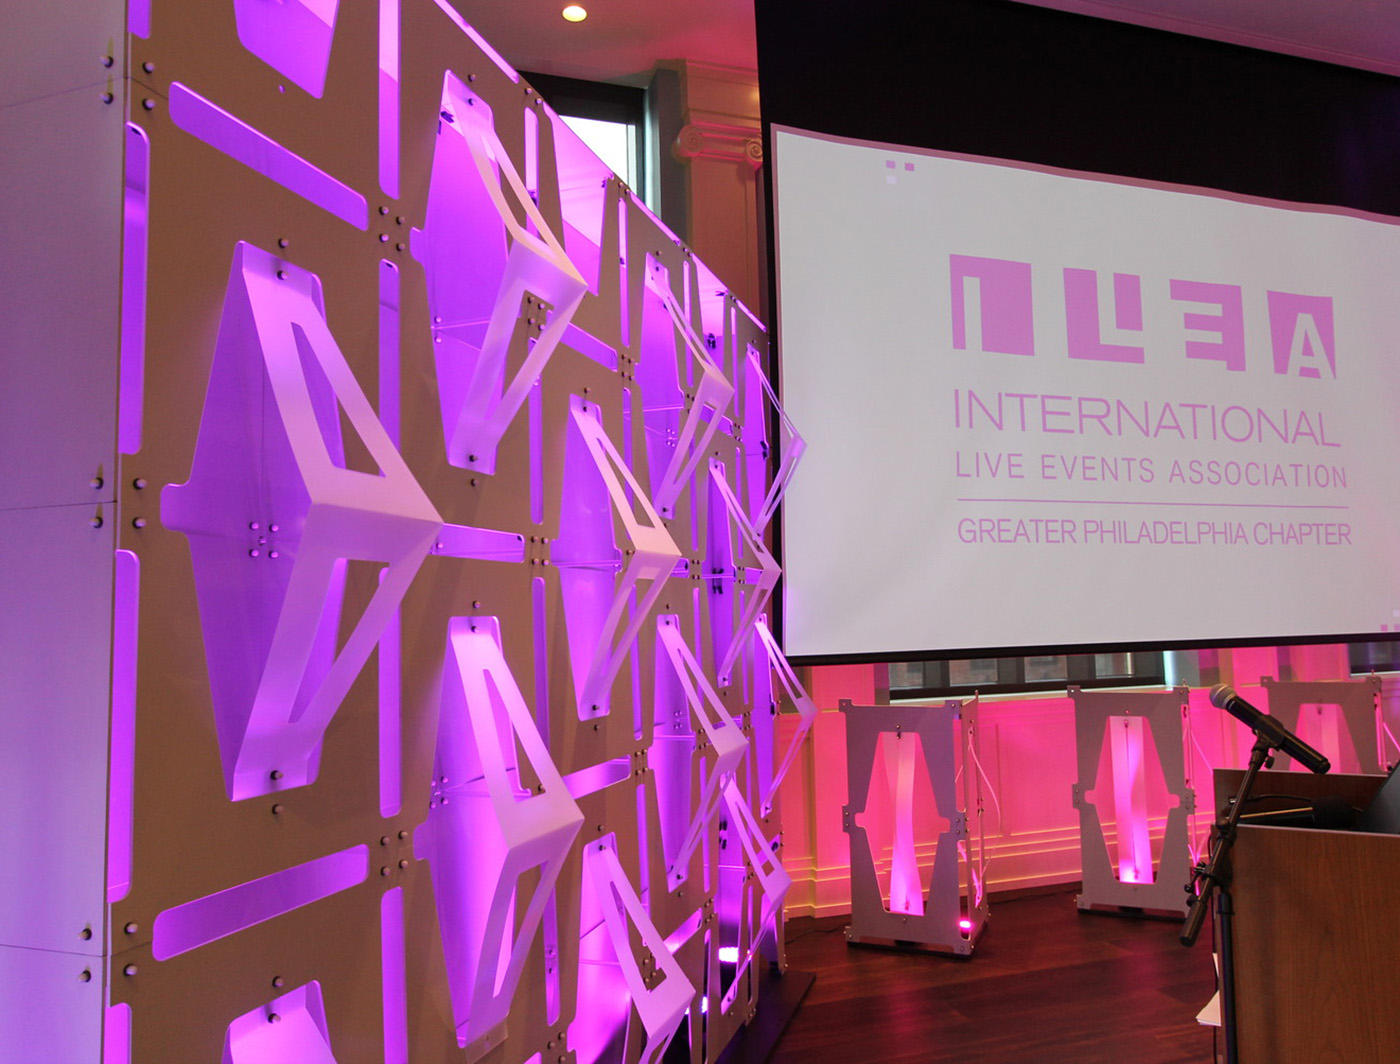 un-cut works well as a SuperWall at the ILEA Awards